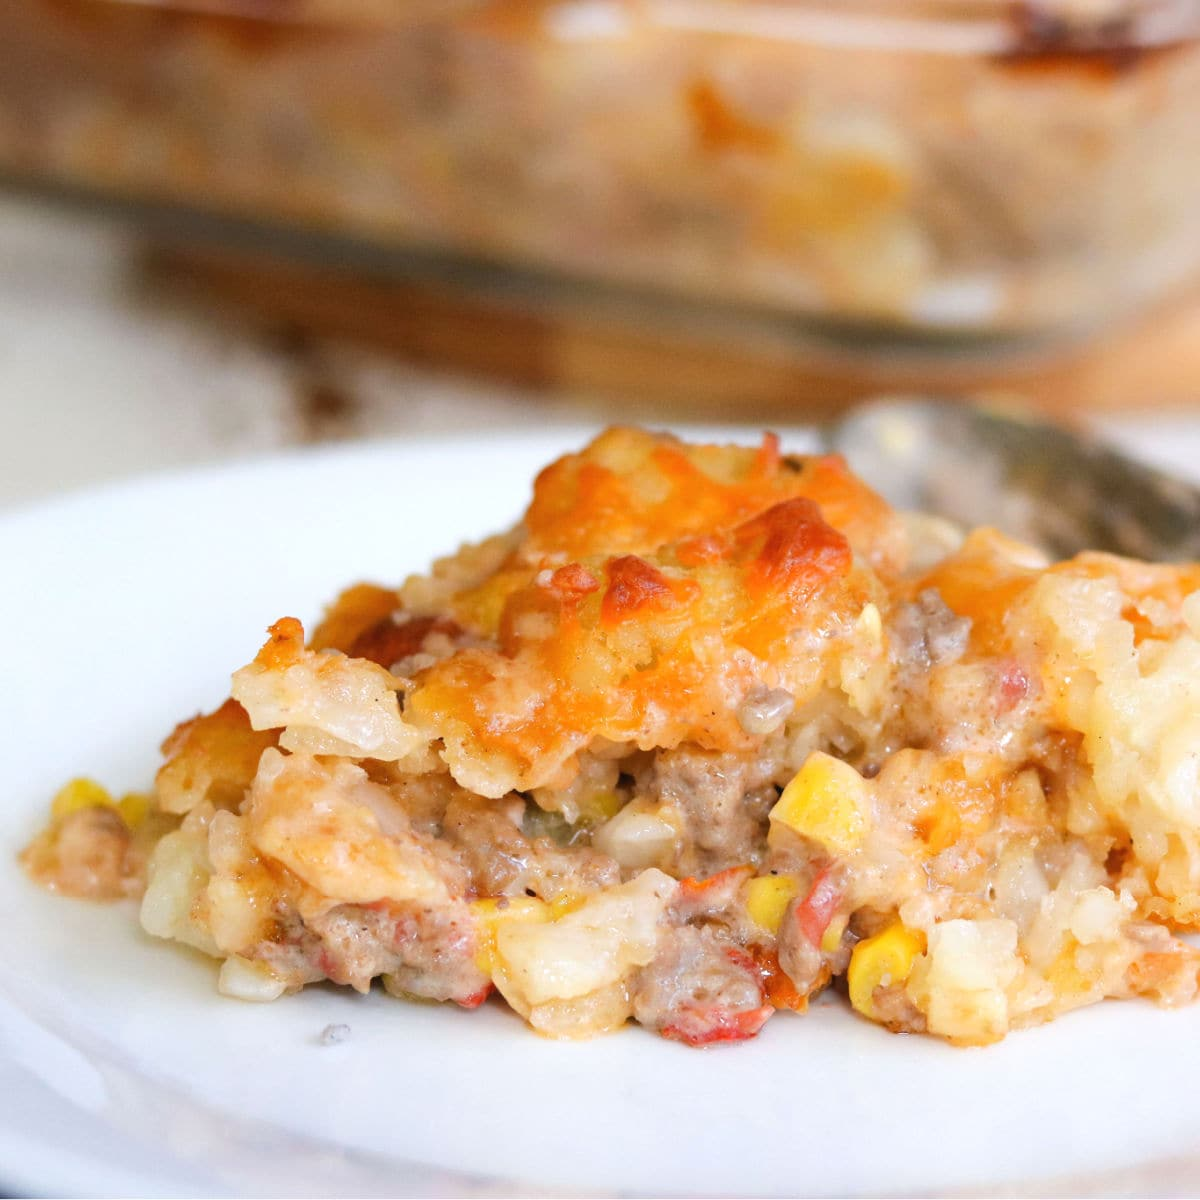 Serving of casserole on a plate showing the finished dish.